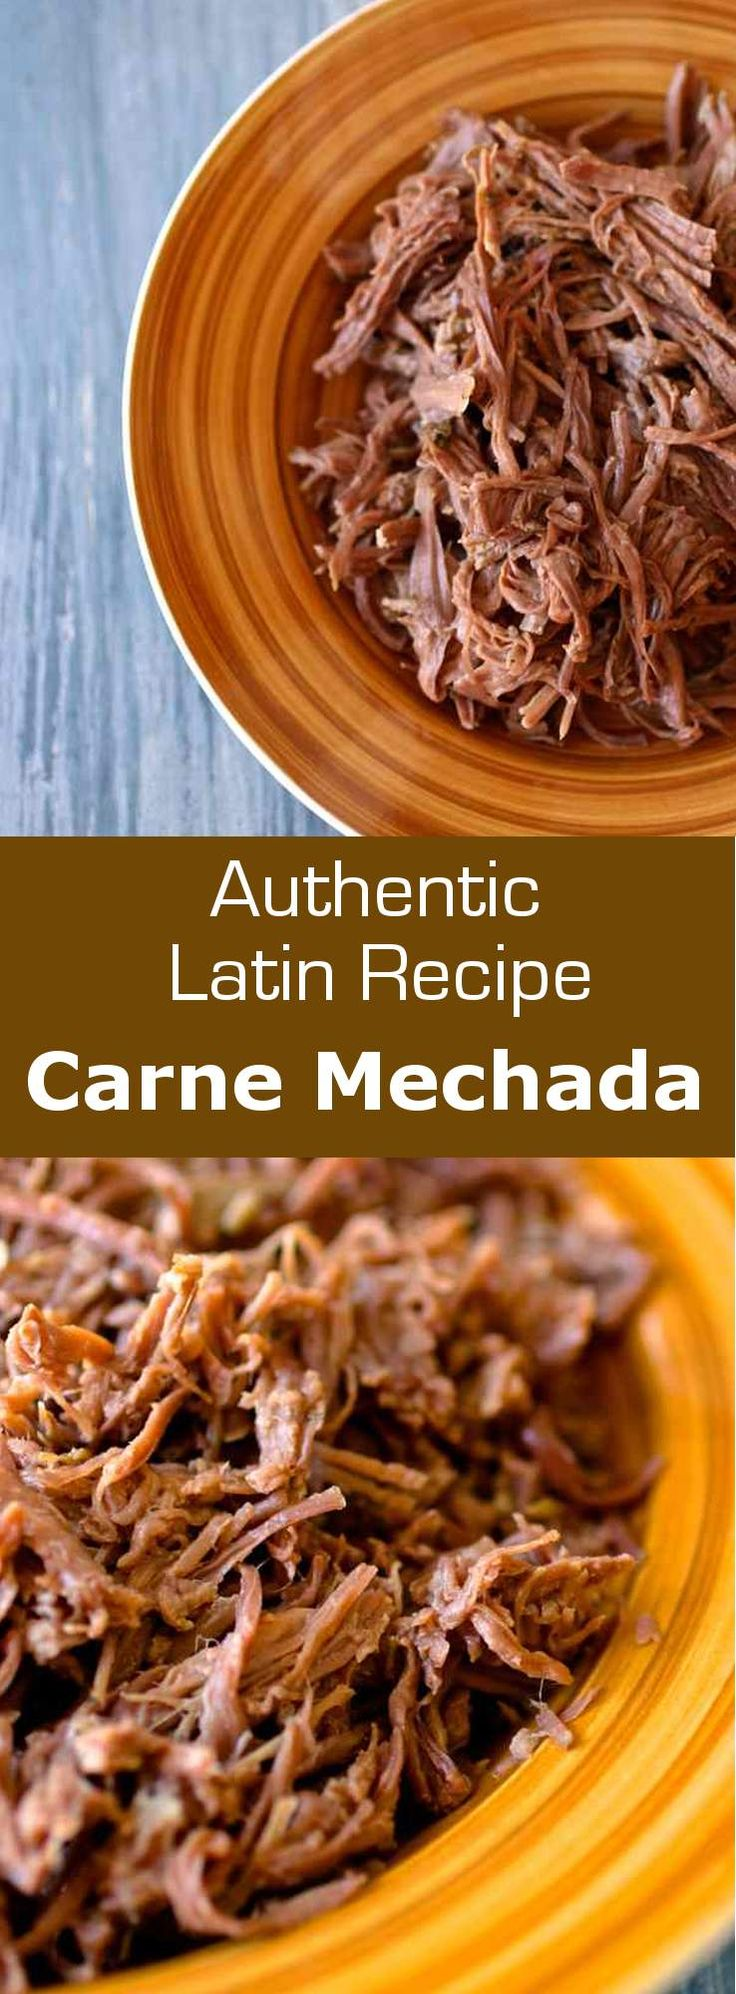 Carne mechada is shredded meat that serves as a base for a number of recipes in Latin America, including as filling for empanadas and arepas. #meat #beef #costarica #latincuisine #latin #196flavos